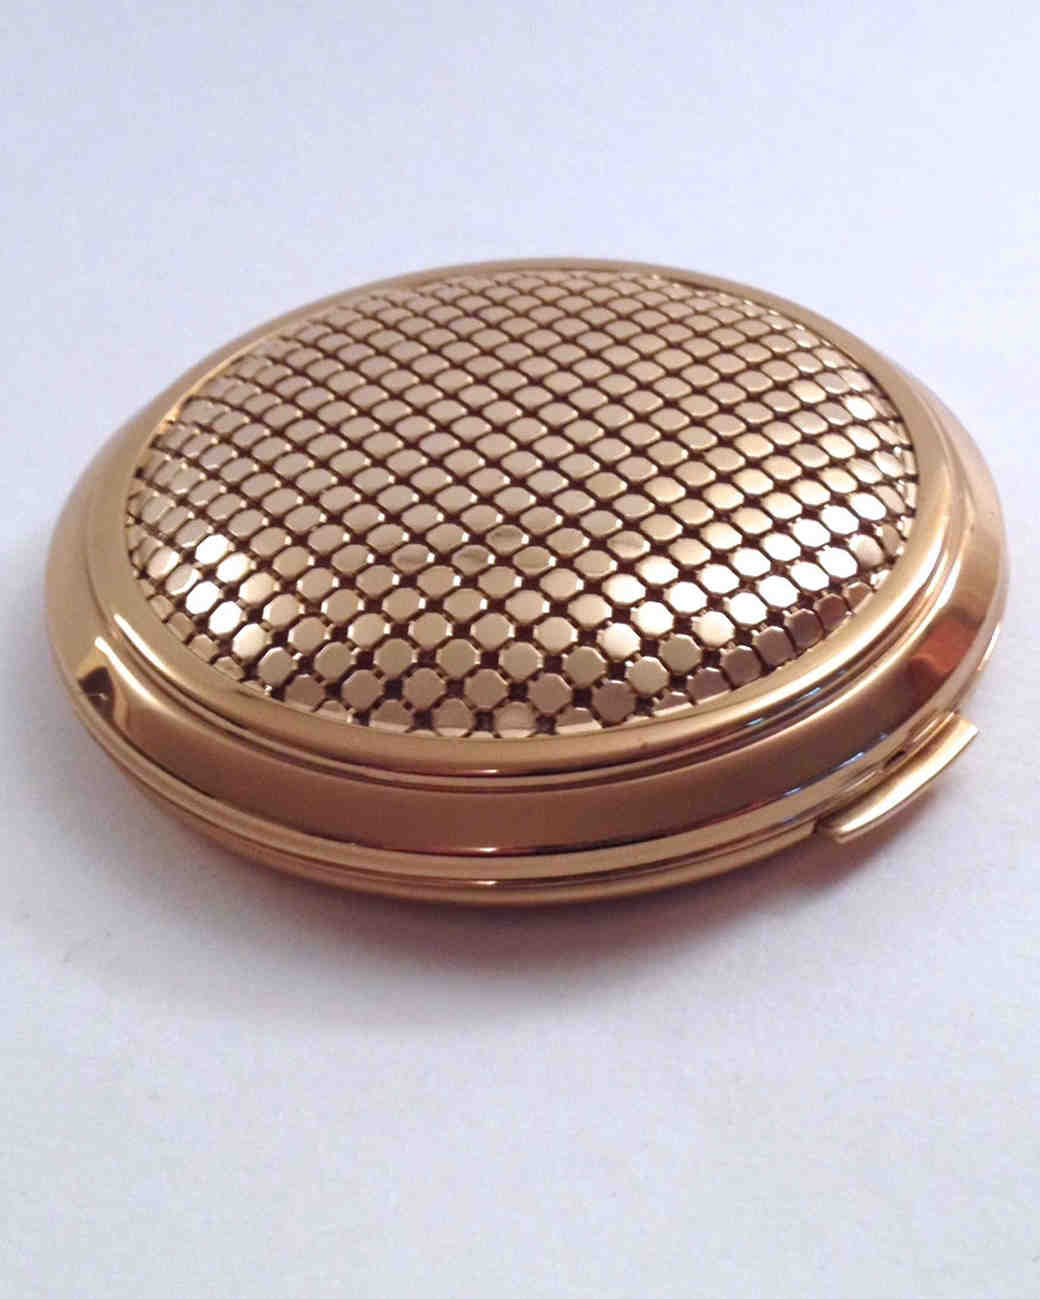 ring-boxes-whirleyshirley-vintage-gold-mesh-compact-0115.jpg